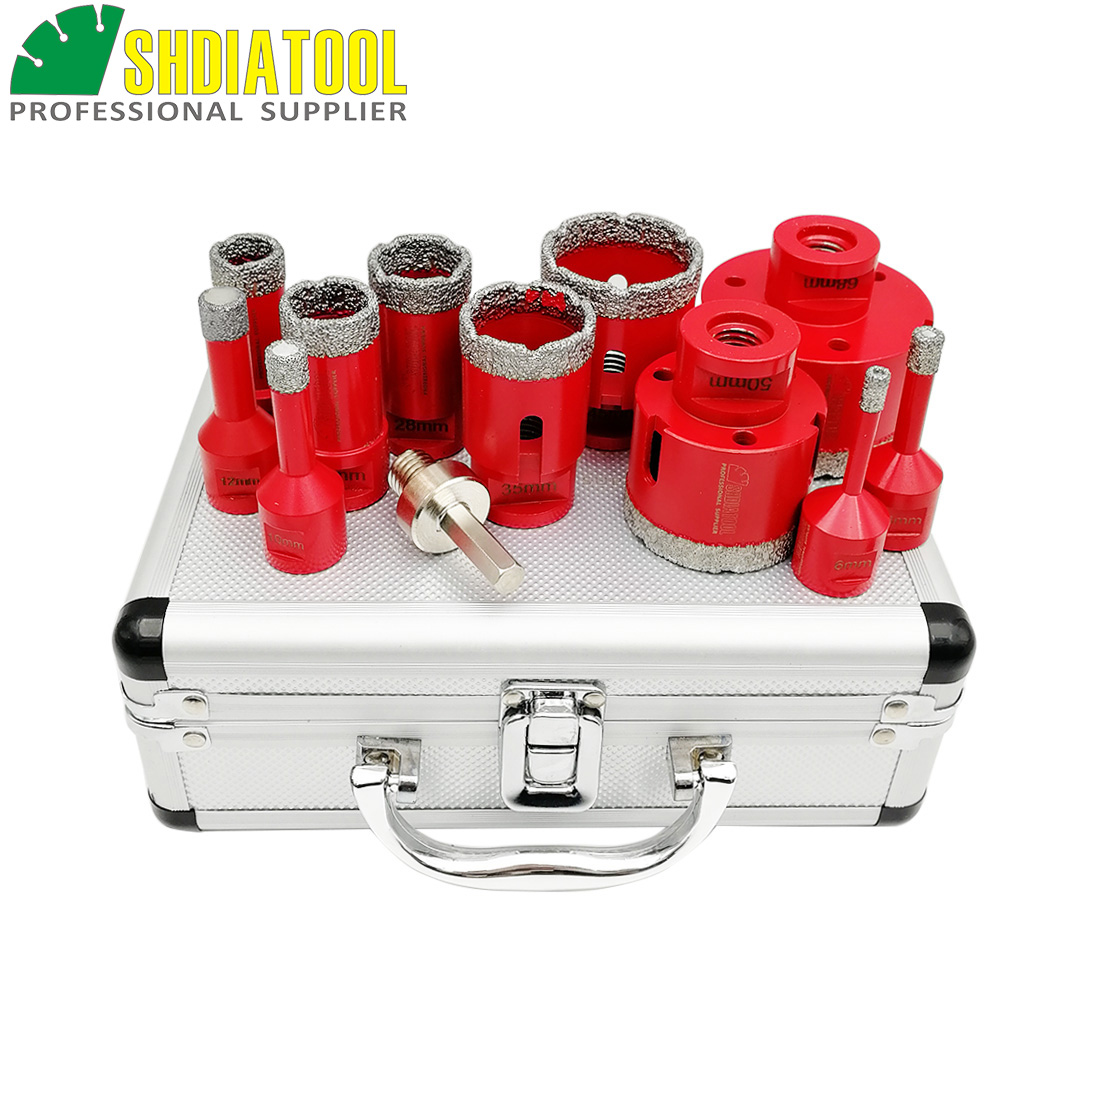 SHDIATOOL 12pcs/pk Vacuum Brazed Diamond Drill Core Bit M14 Thread Drilling Bits Marble Ceramic Hole Saw Porcelain Tiles Crown